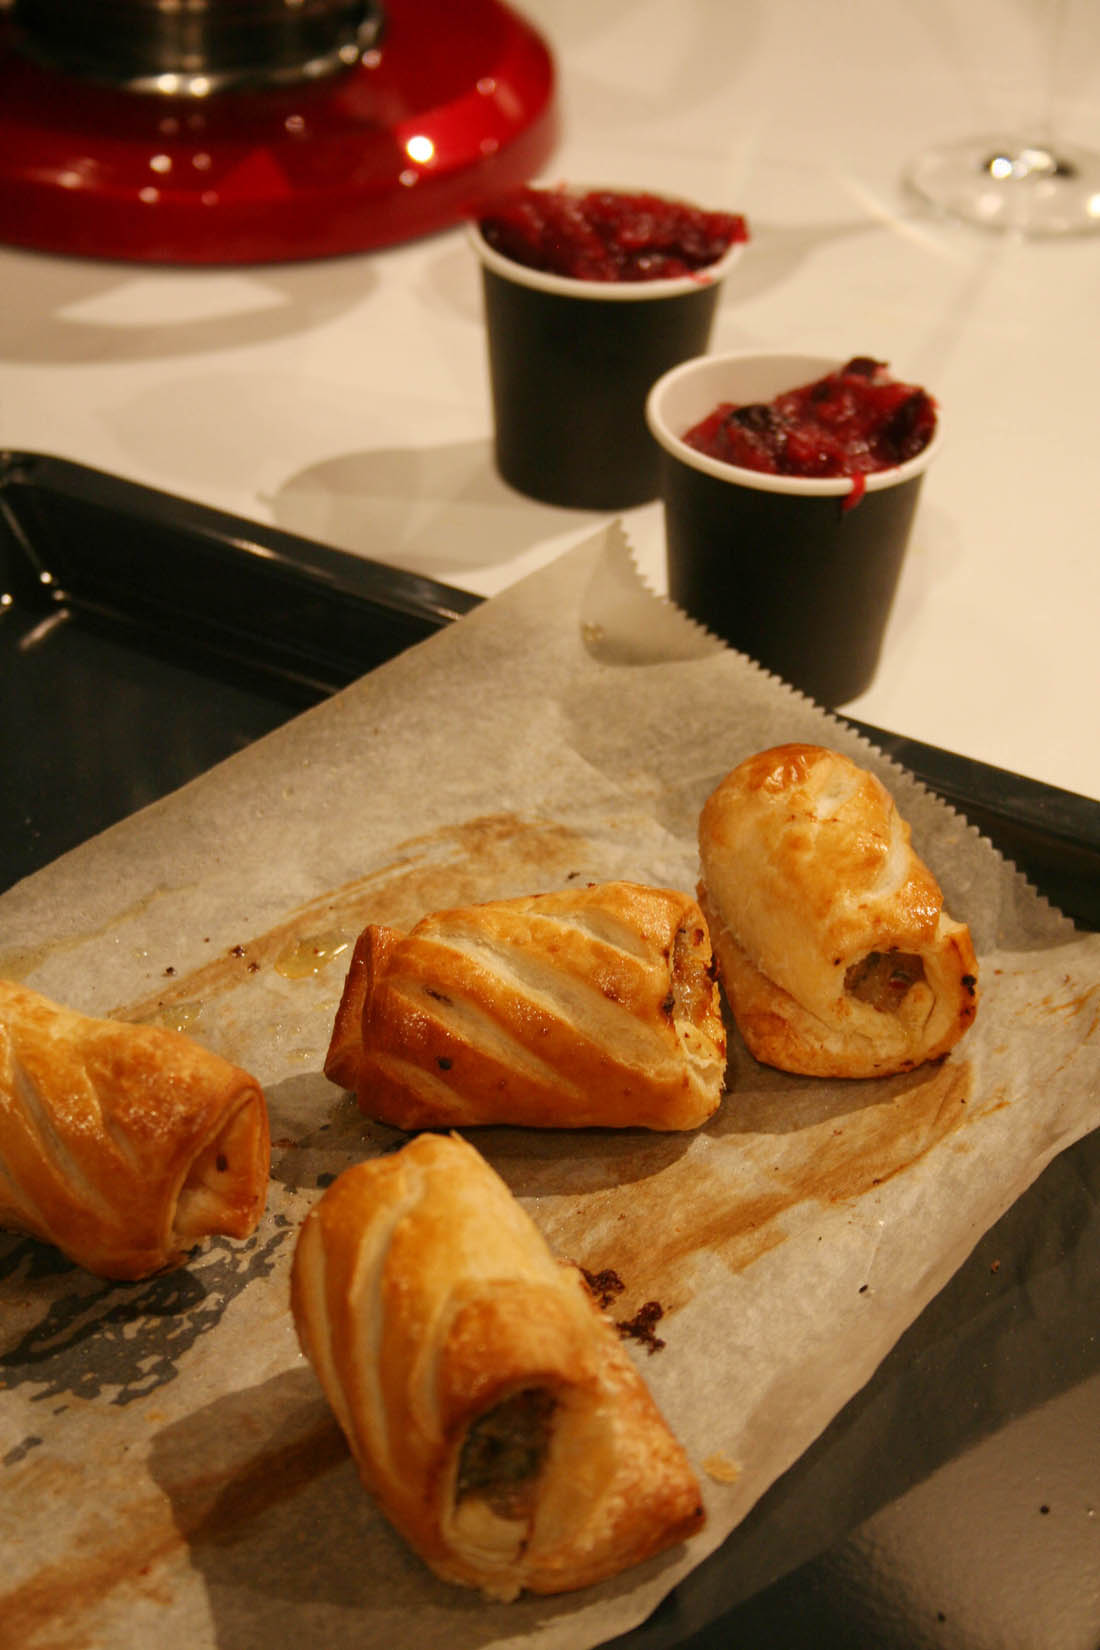 Festive baking with AEG spiced sausage rolls with cranberry chutney using the new AEG mastery range